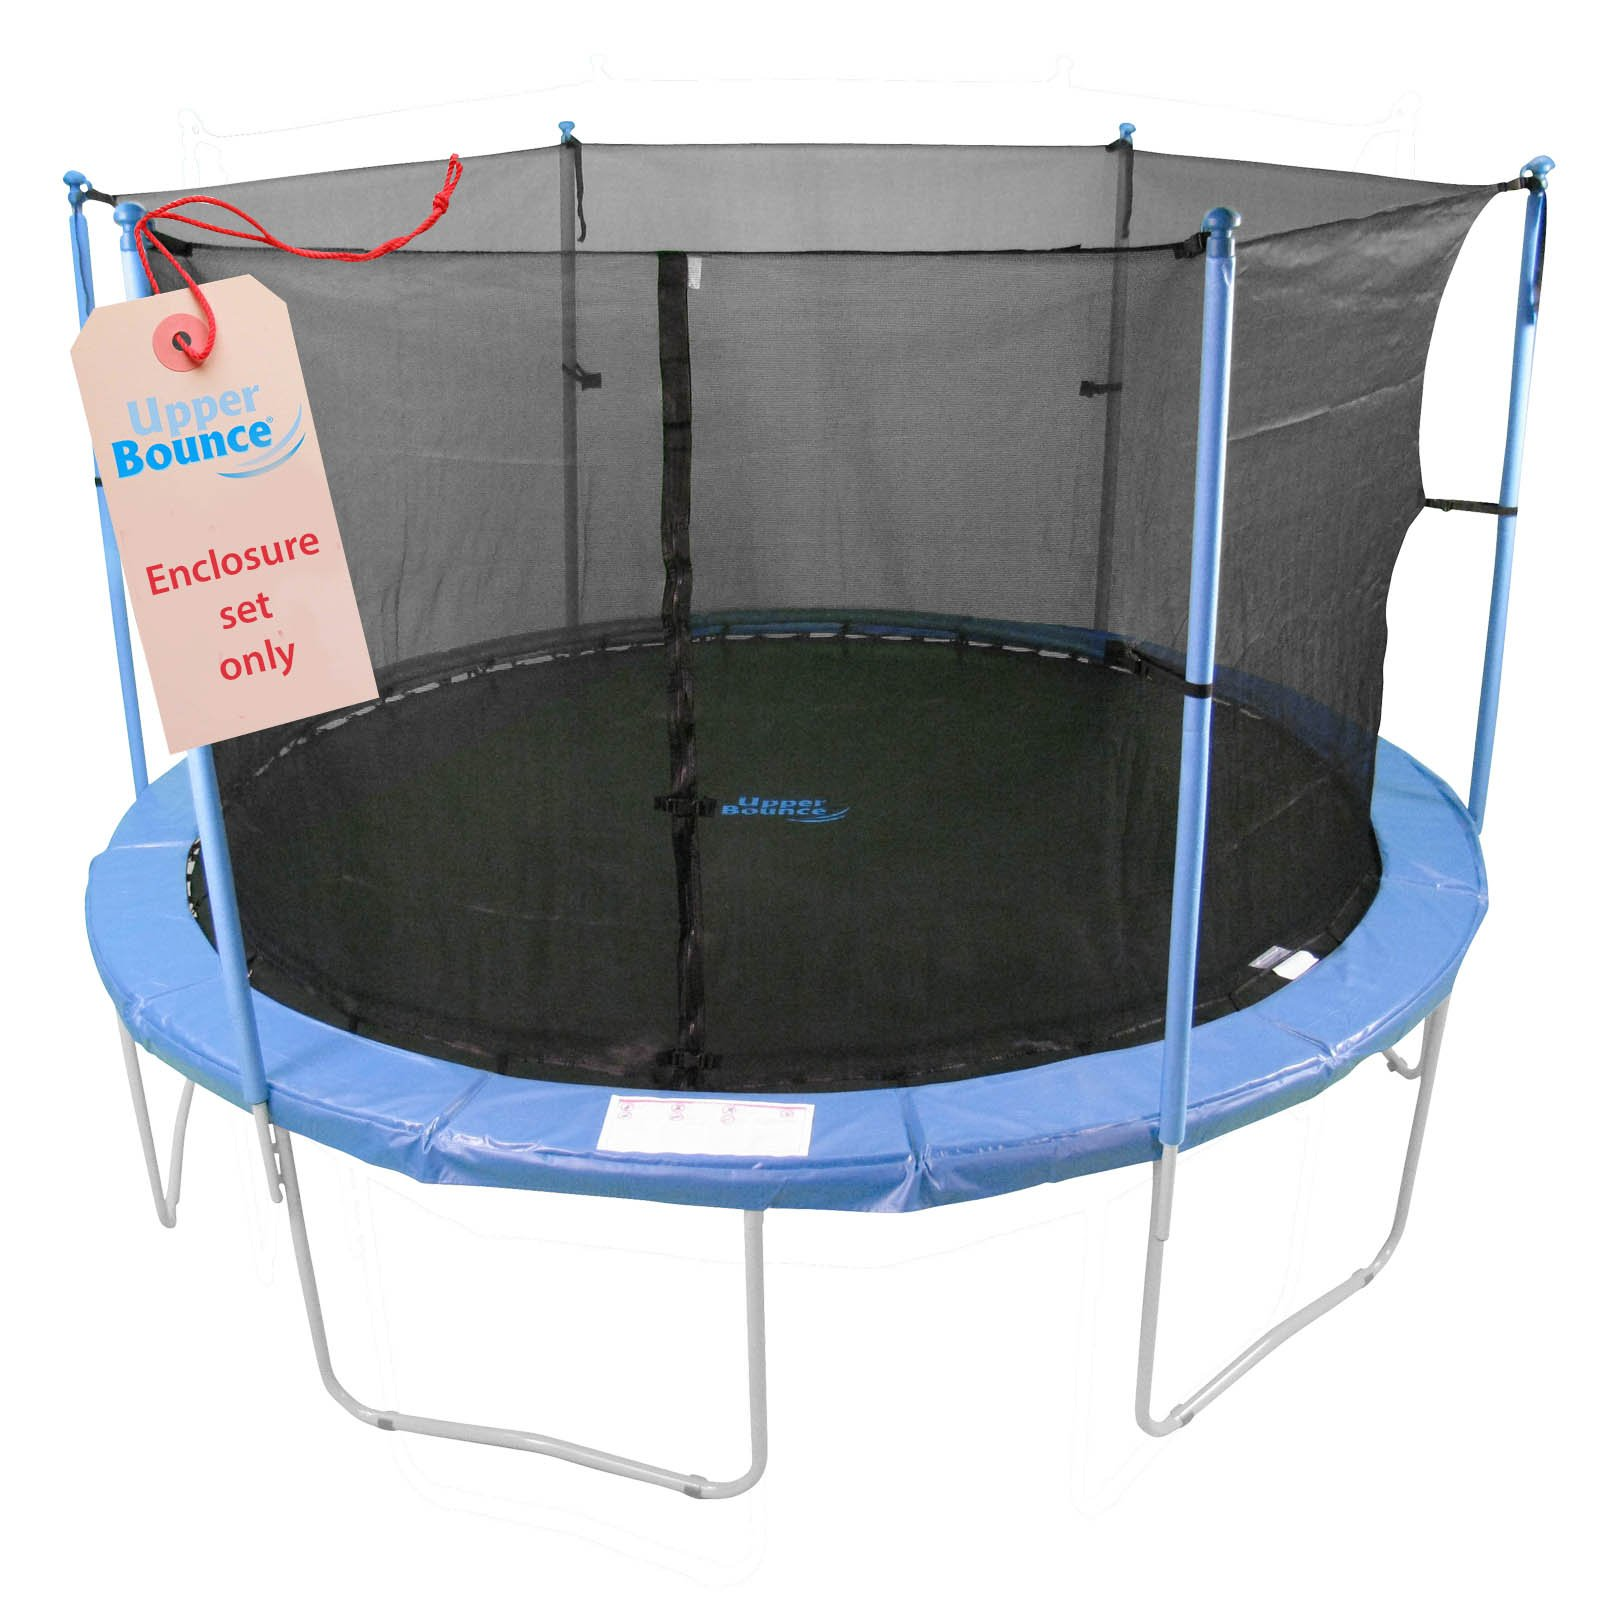 Trampoline Enclosure Set, to fit 8 FT. Round Frames, for 3 or 6 W-Shaped Legs -Set Includes: Net, Poles & Hardware Only